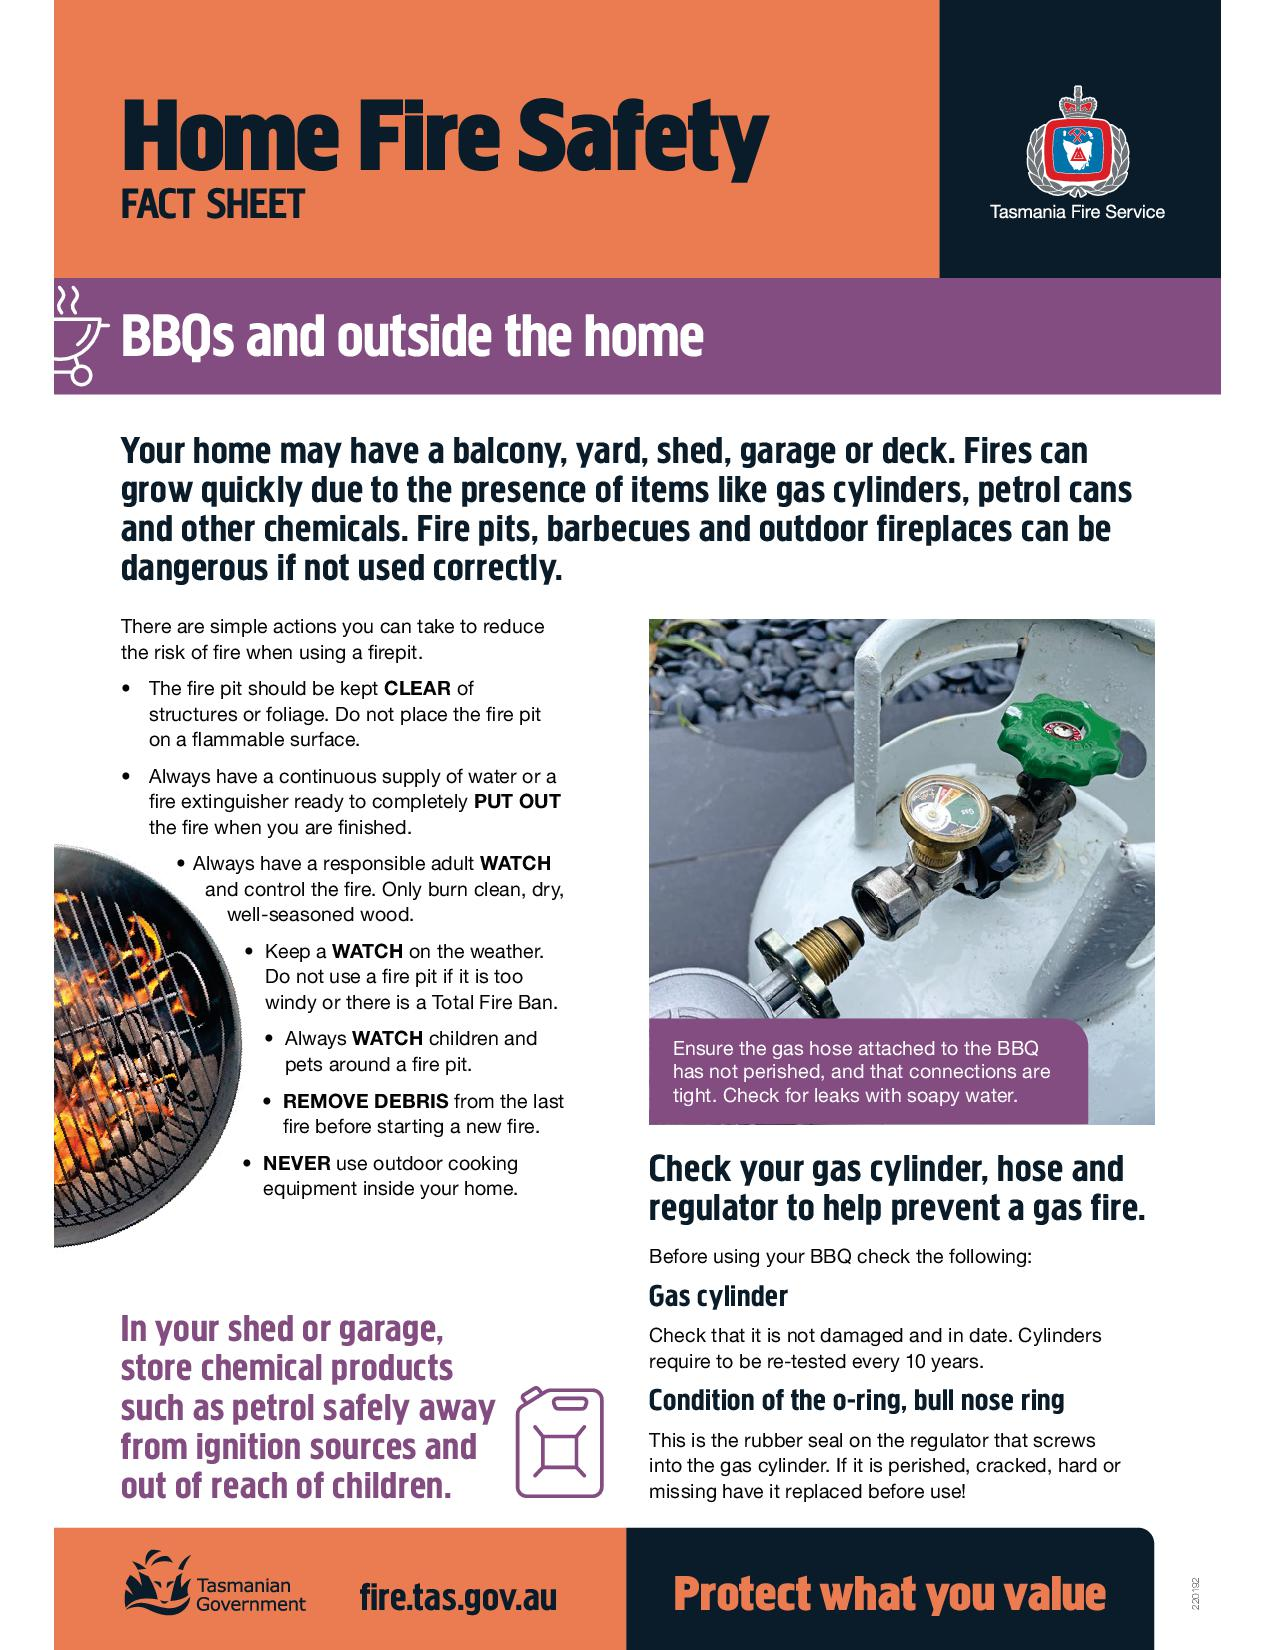 Tfs fire safety publications tfs brn for Home safety facts